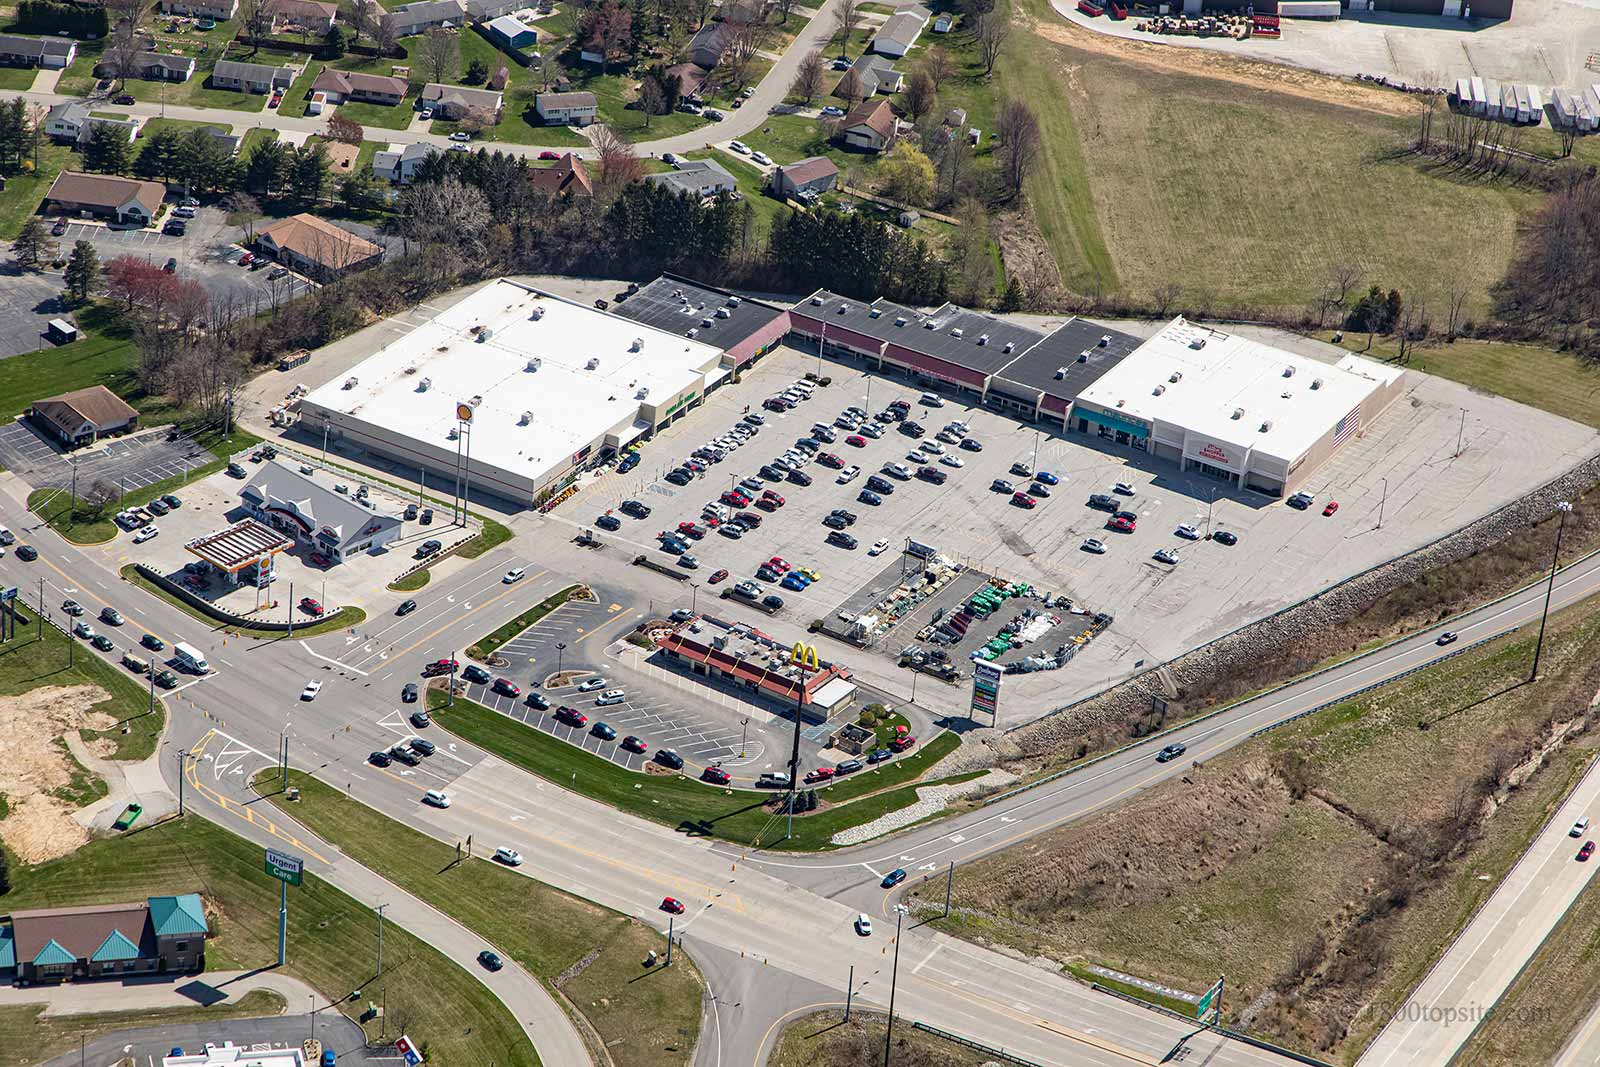 Aerial view of Cross County Plaza shopping center in Batesville, Indiana.